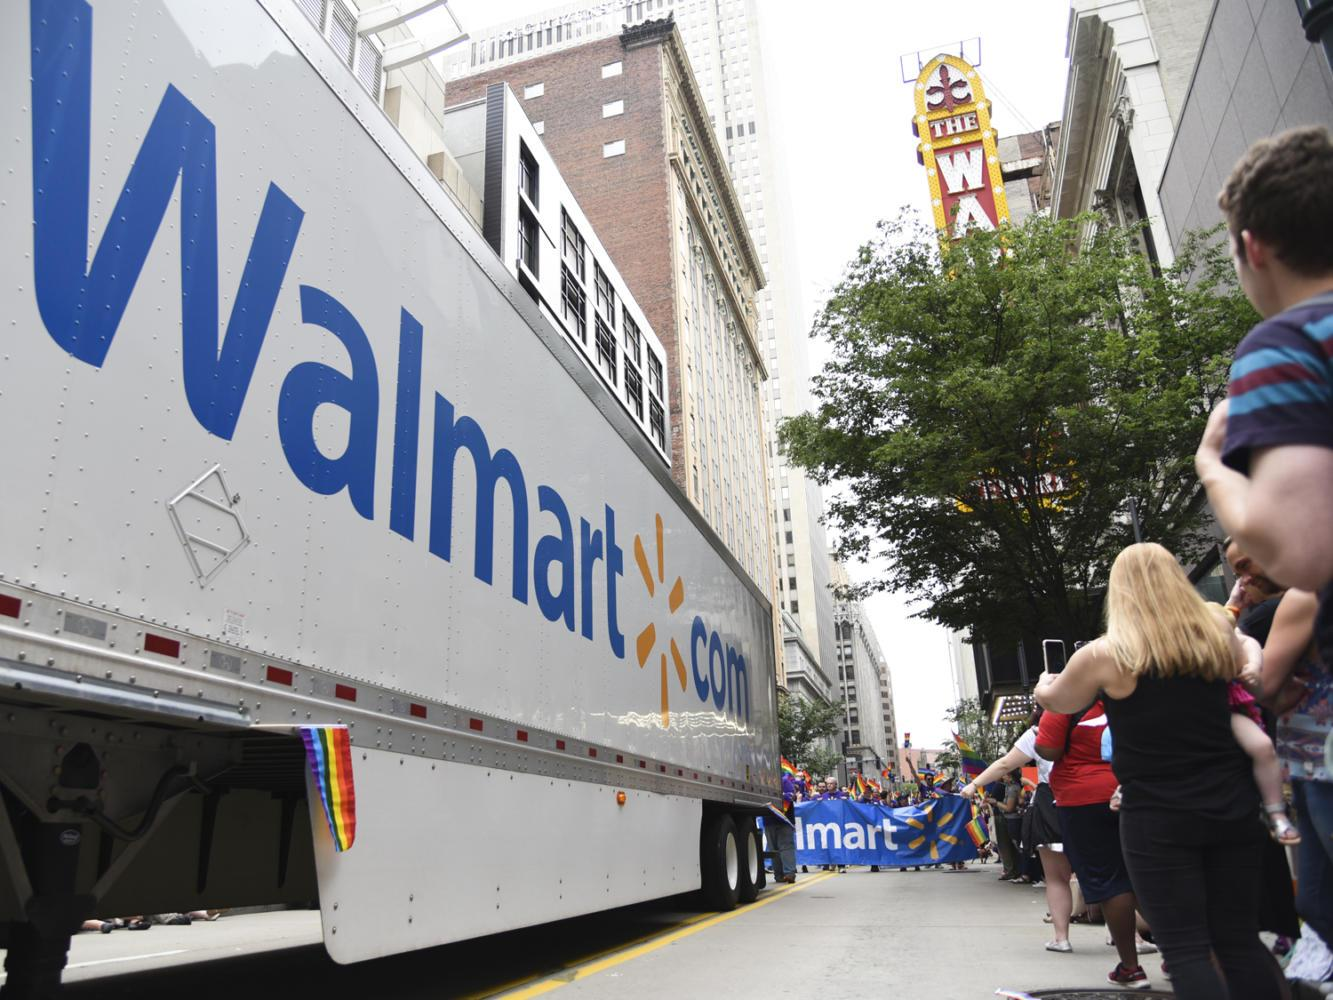 A group of Walmart employees march behind a company truck as it makes its way through EQT's pride parade, which has been criticized as being too centered around corporations. (Photo by Anna Bongardino | Visual Editor)